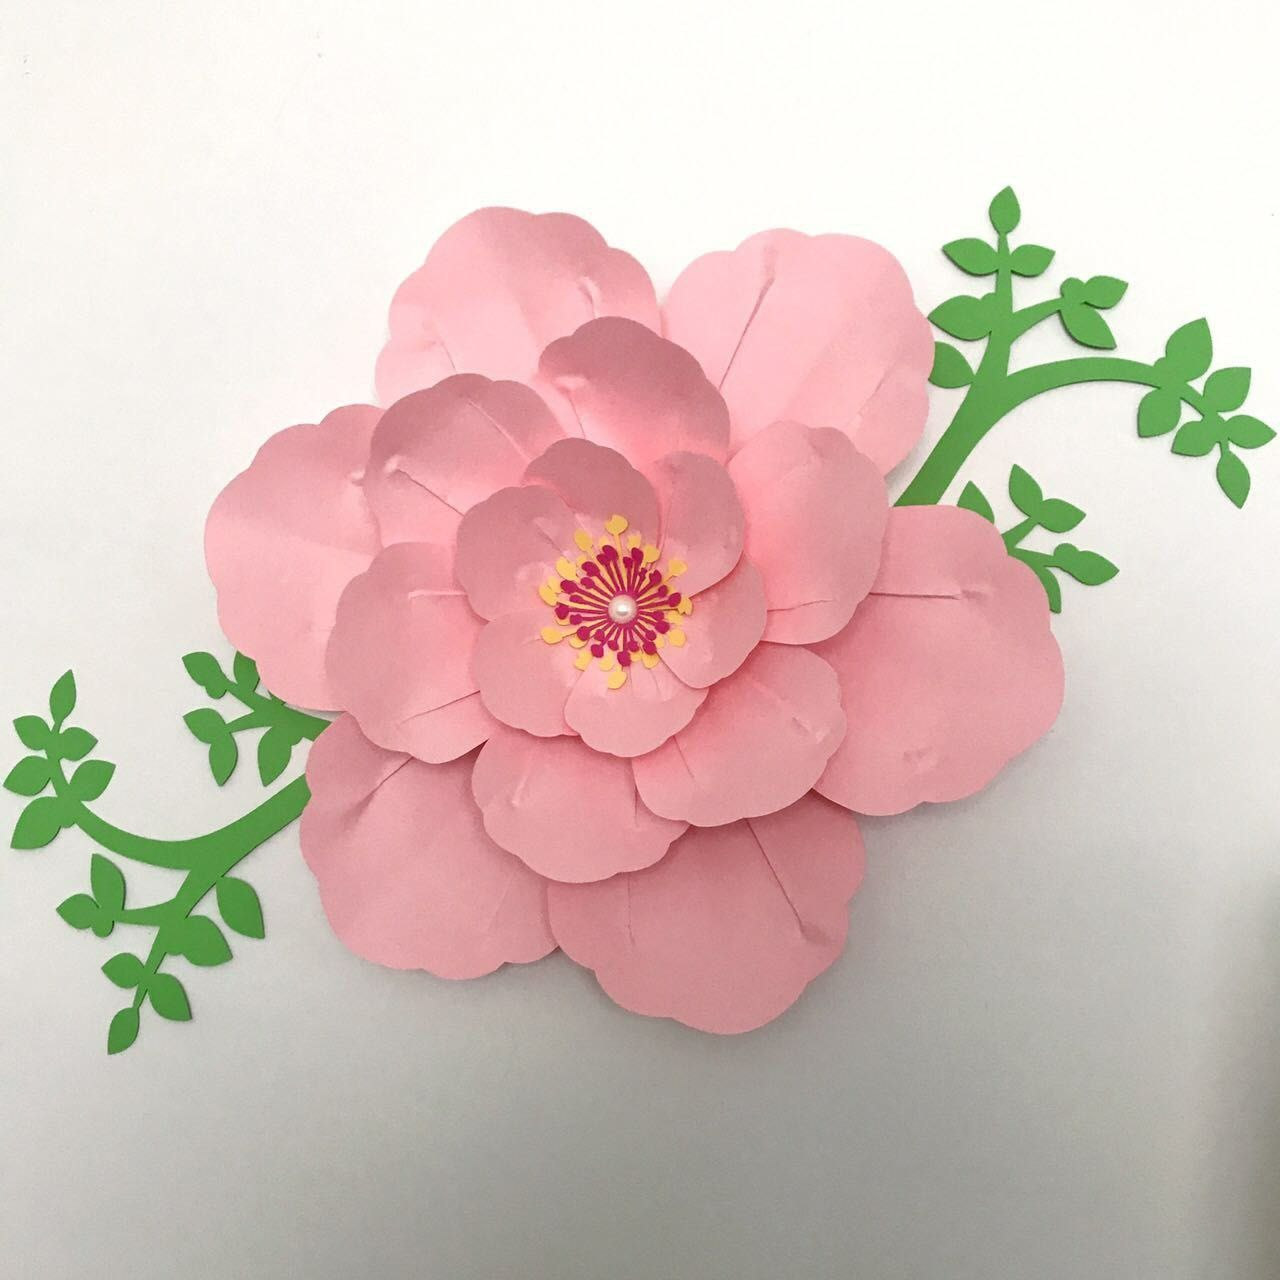 Cherry Blossom Time Check Out This Template Is Available In Our Store Paper Flowers Diy Paper Flowers Giant Paper Flowers